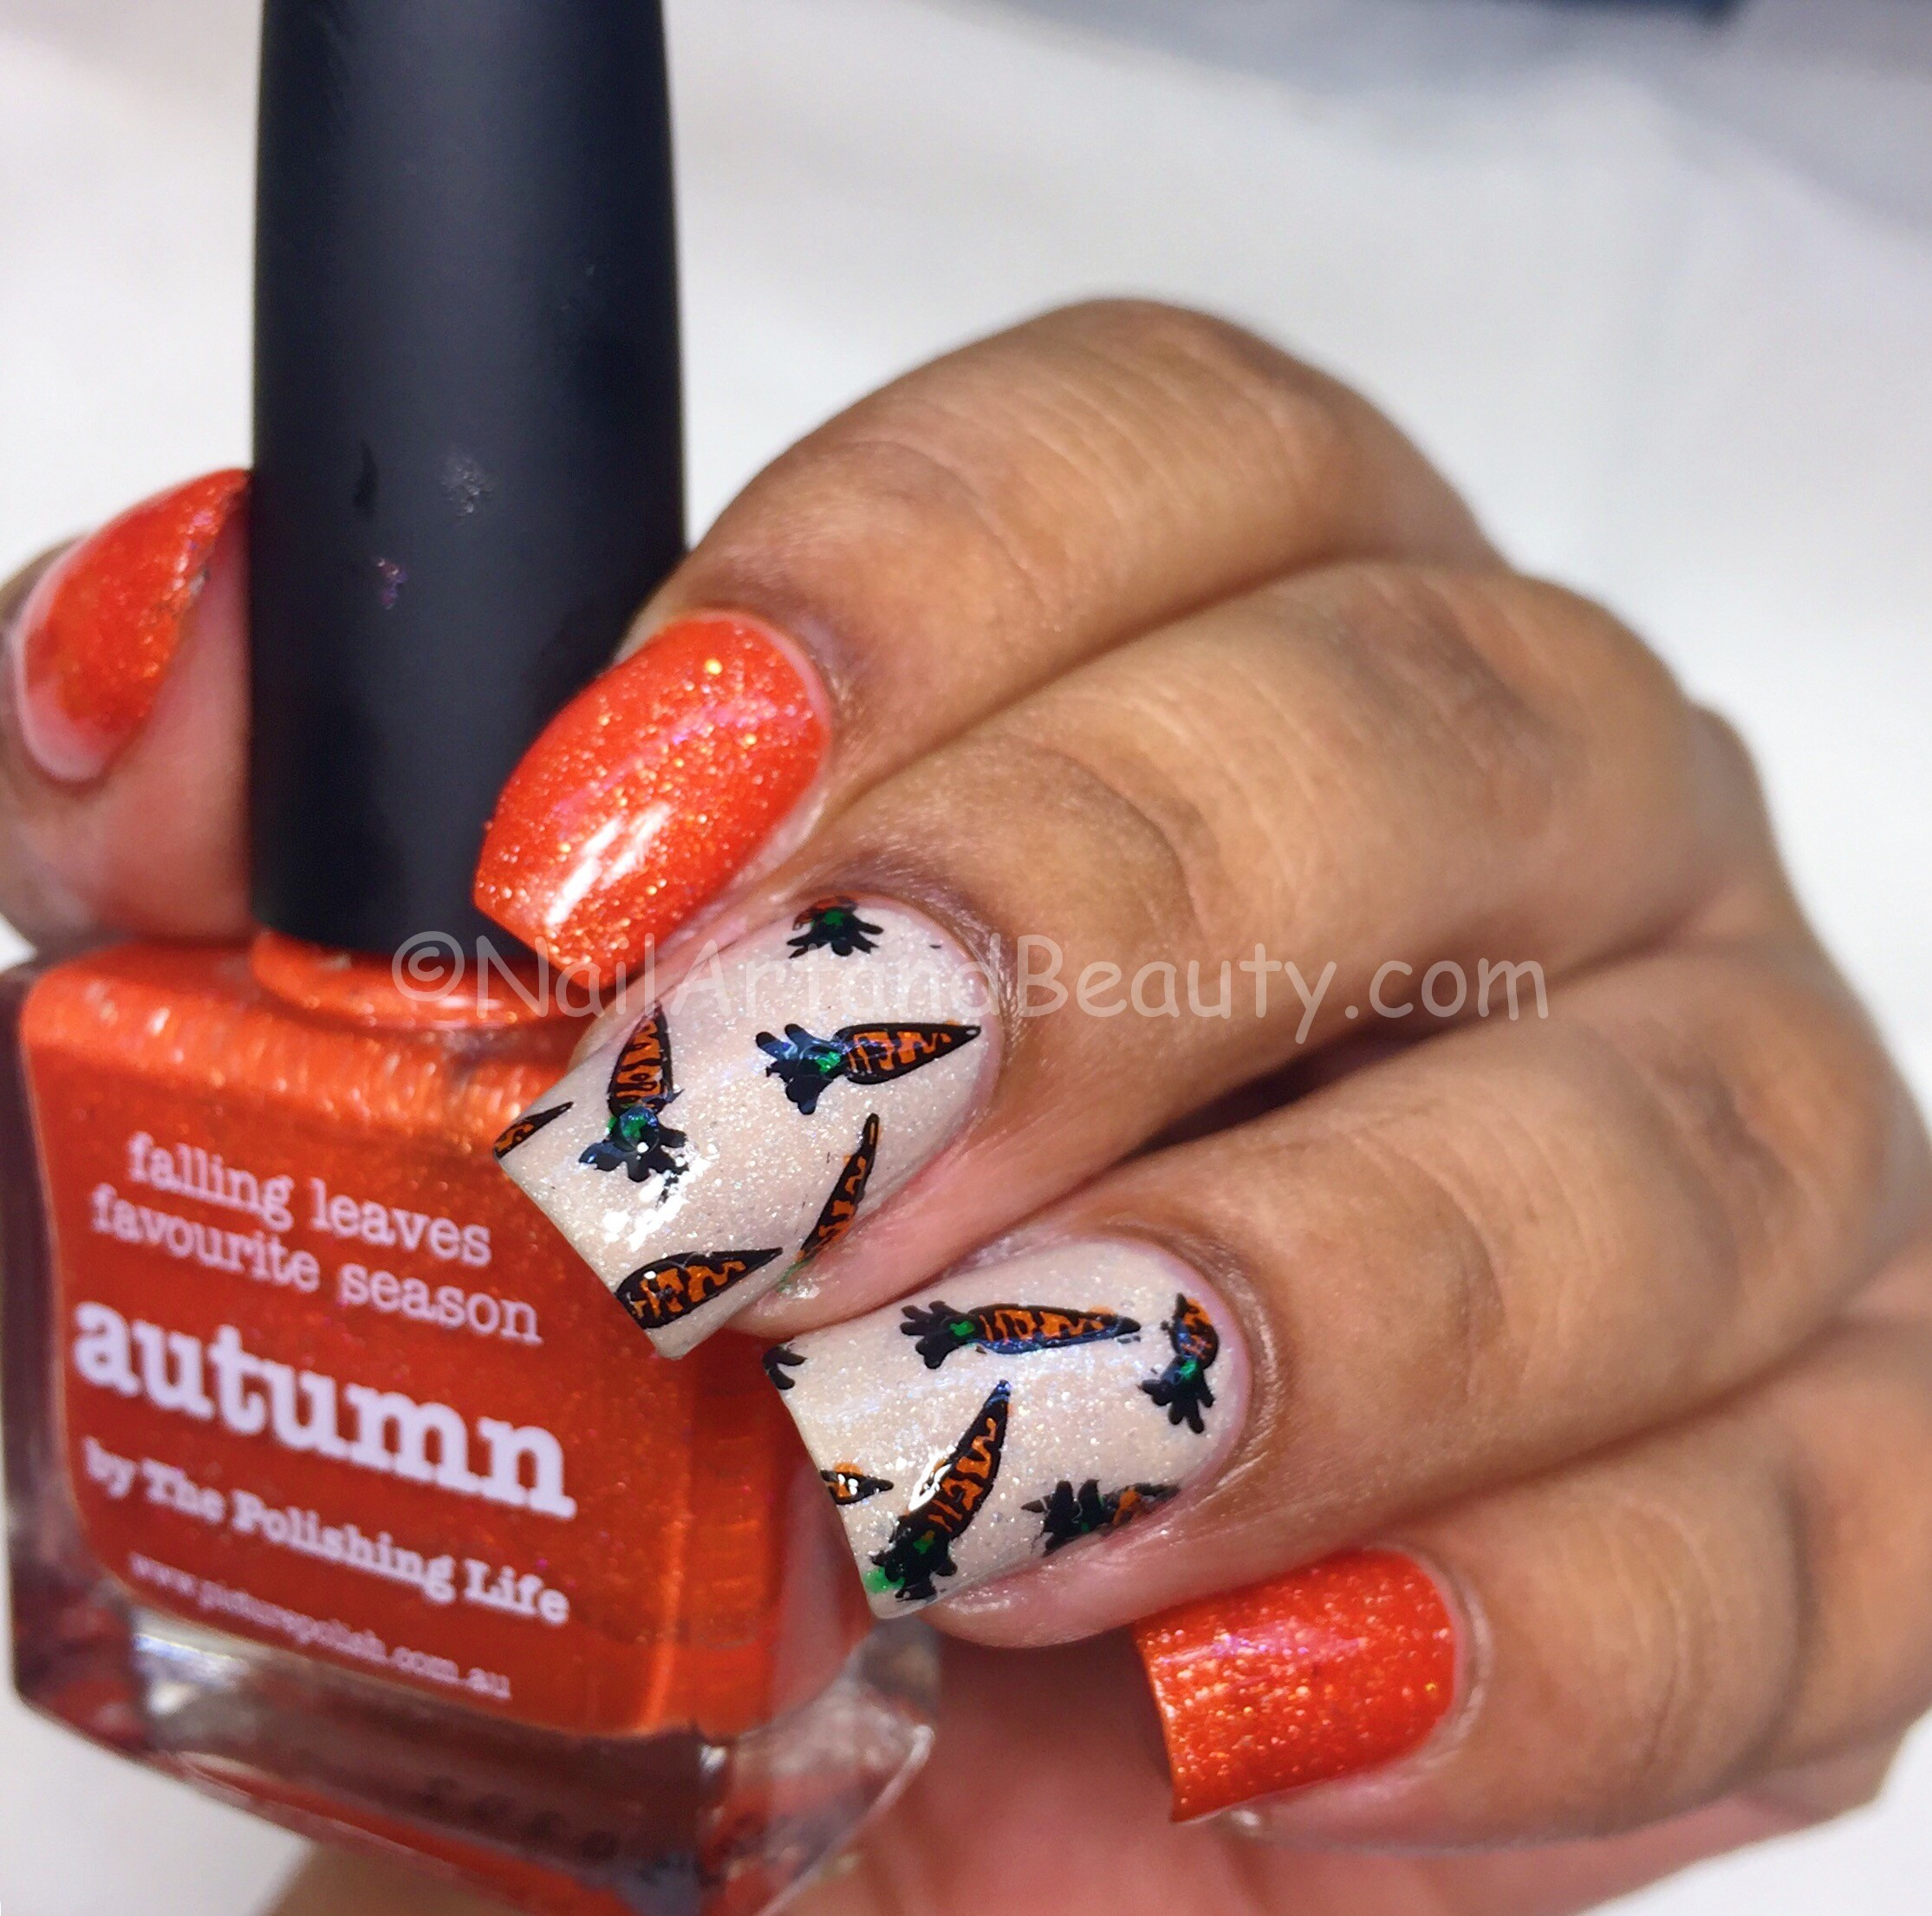 Carrot Nails with PP Cherish and Autumn